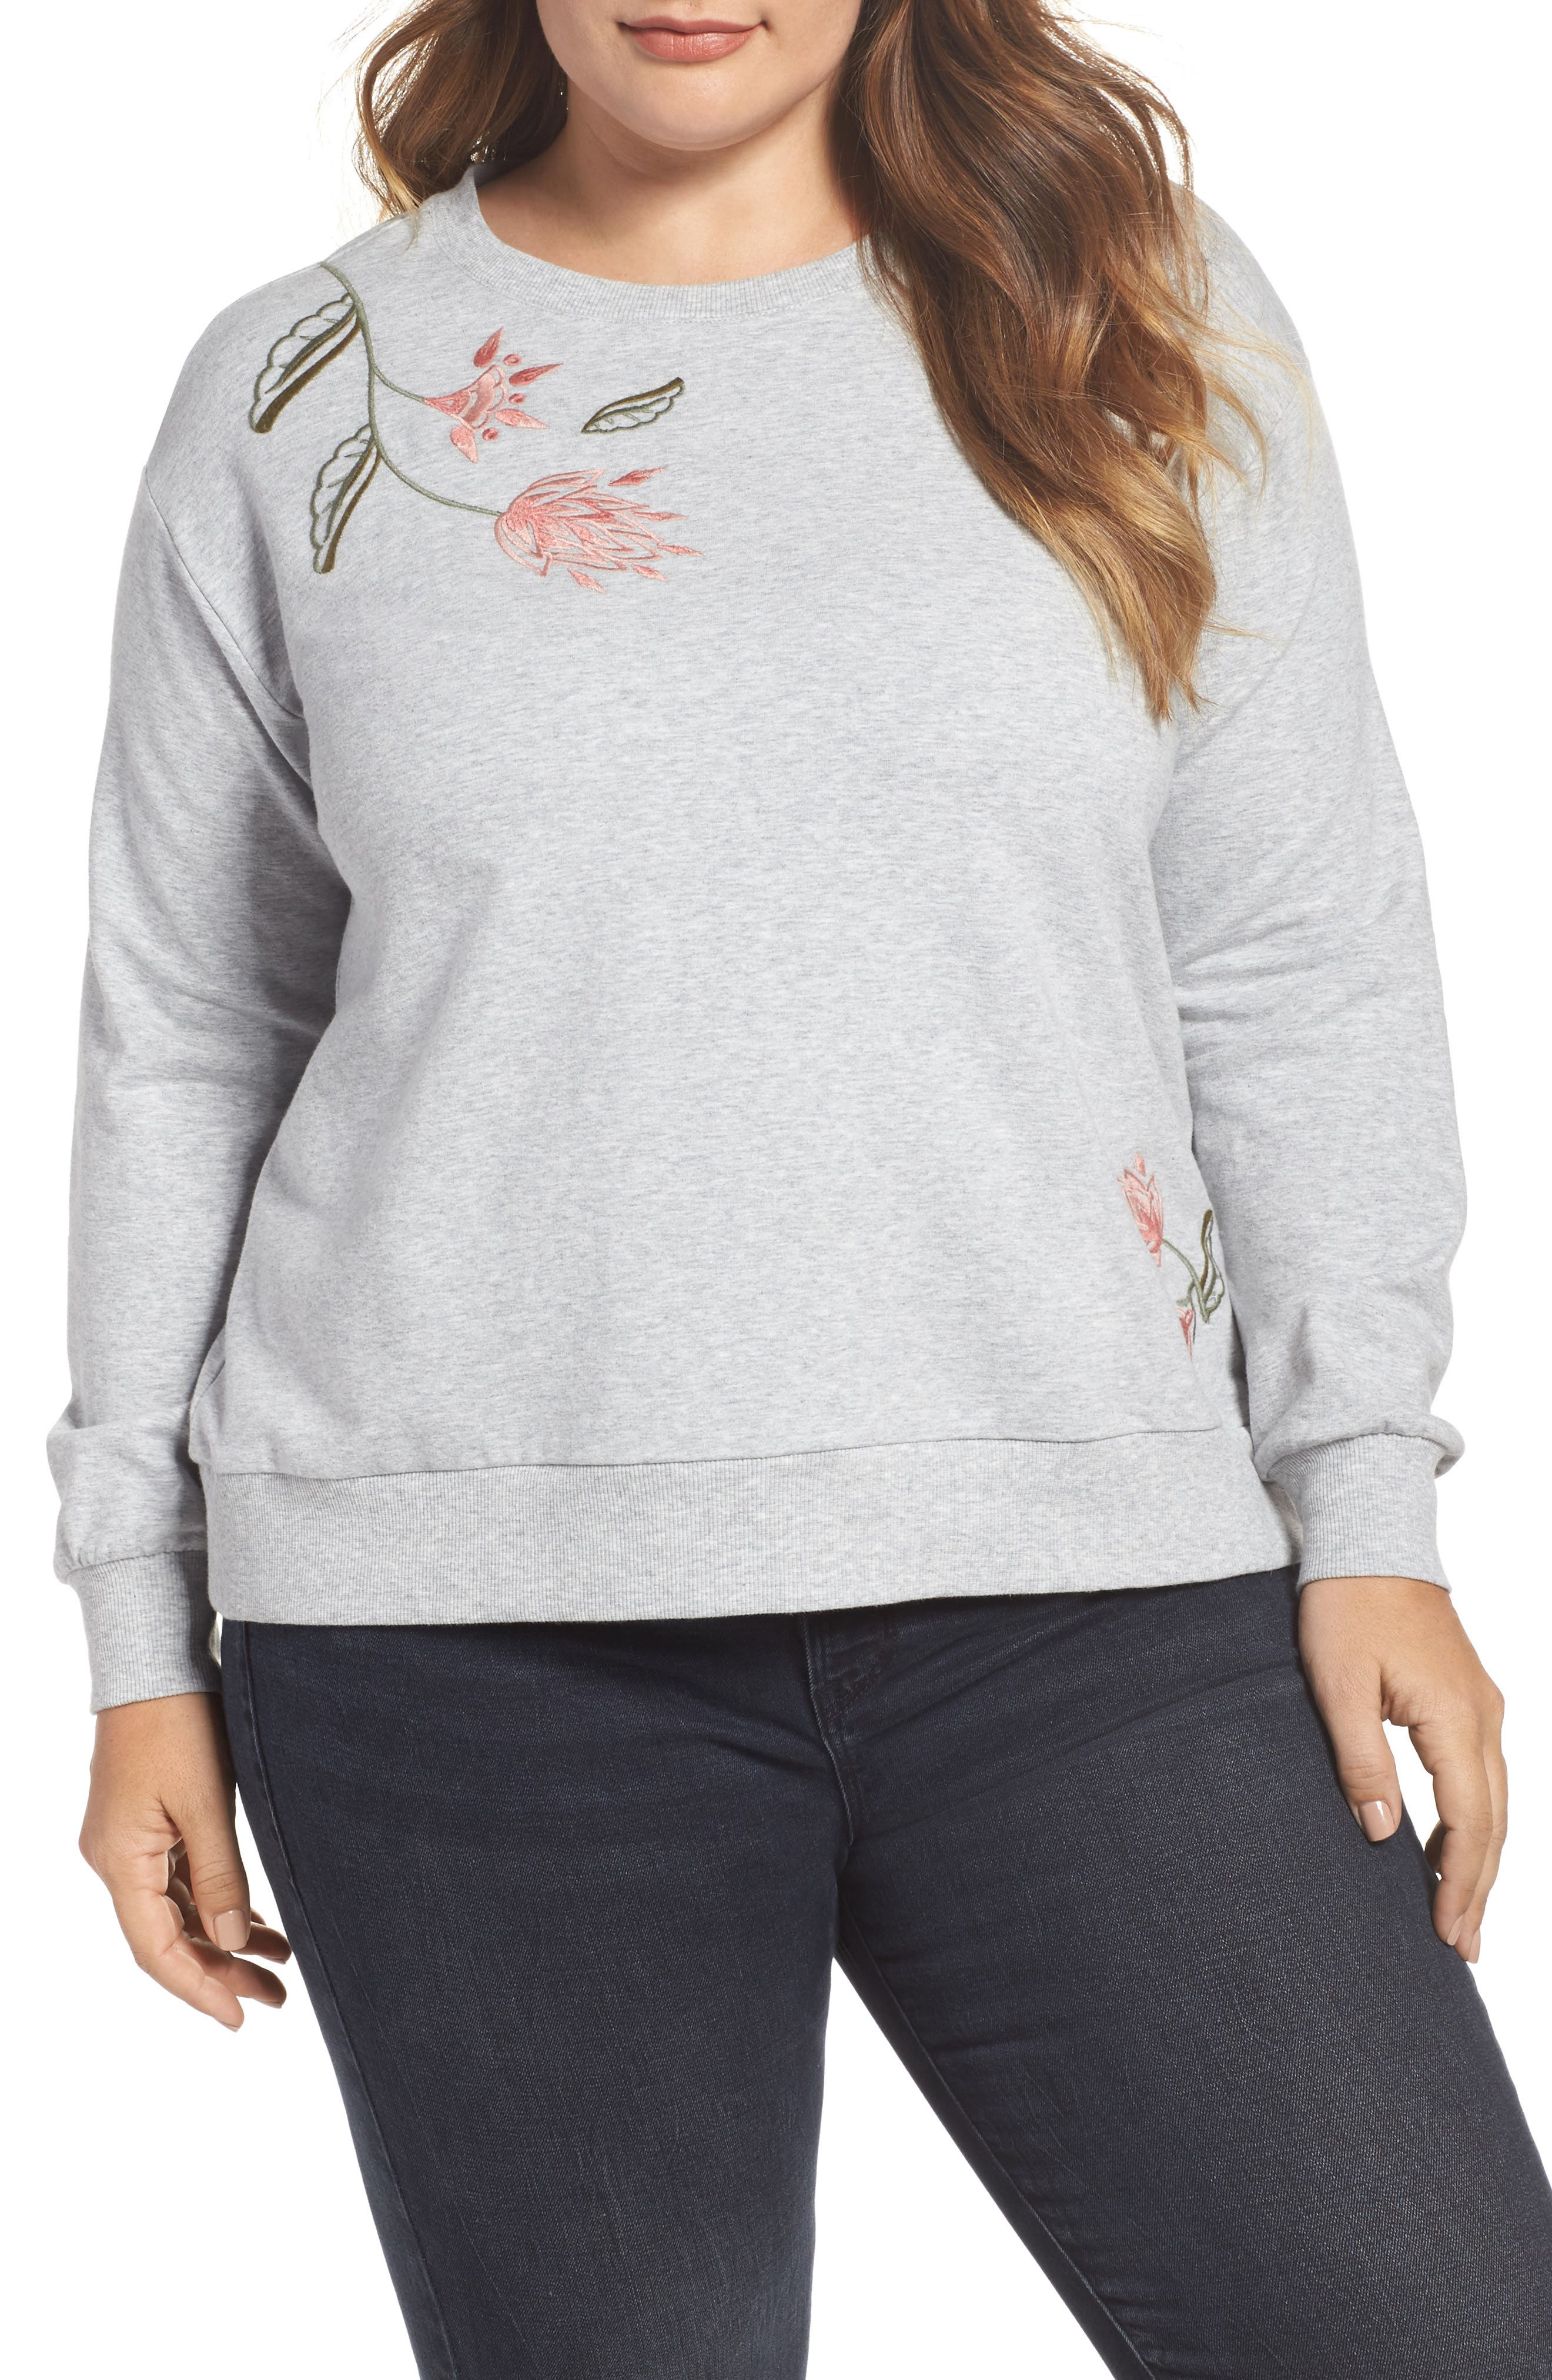 Embroidered Sweatshirt,                             Main thumbnail 1, color,